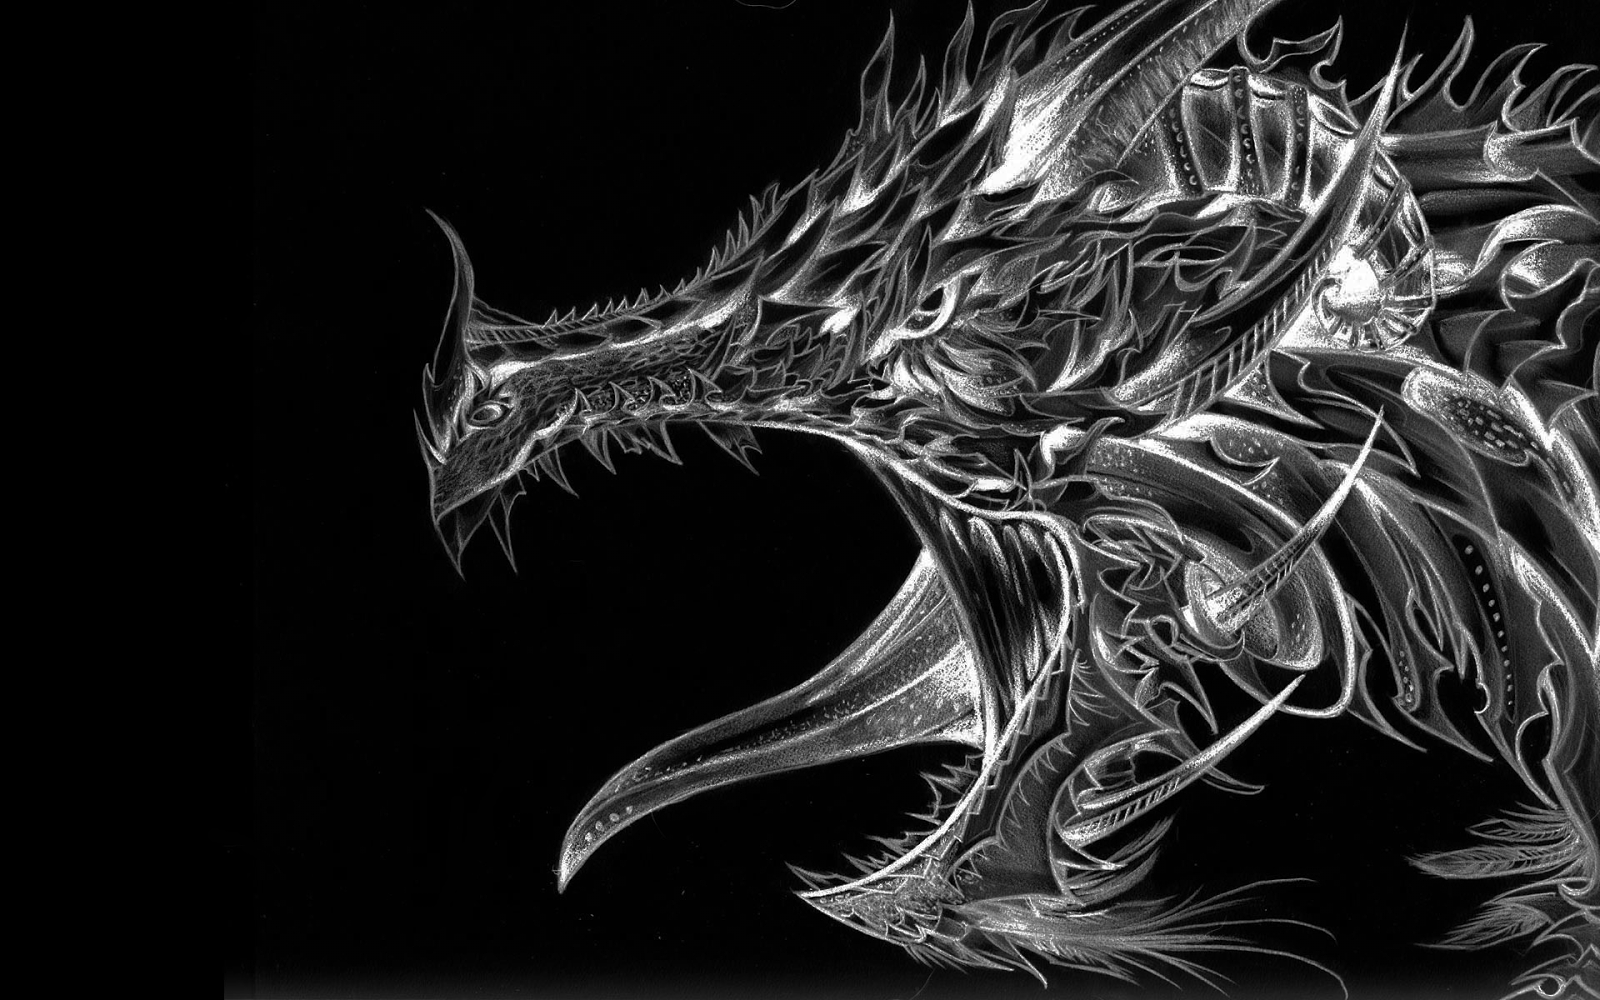 Silver Dragon Wallpapers Top Free Silver Dragon Backgrounds Wallpaperaccess